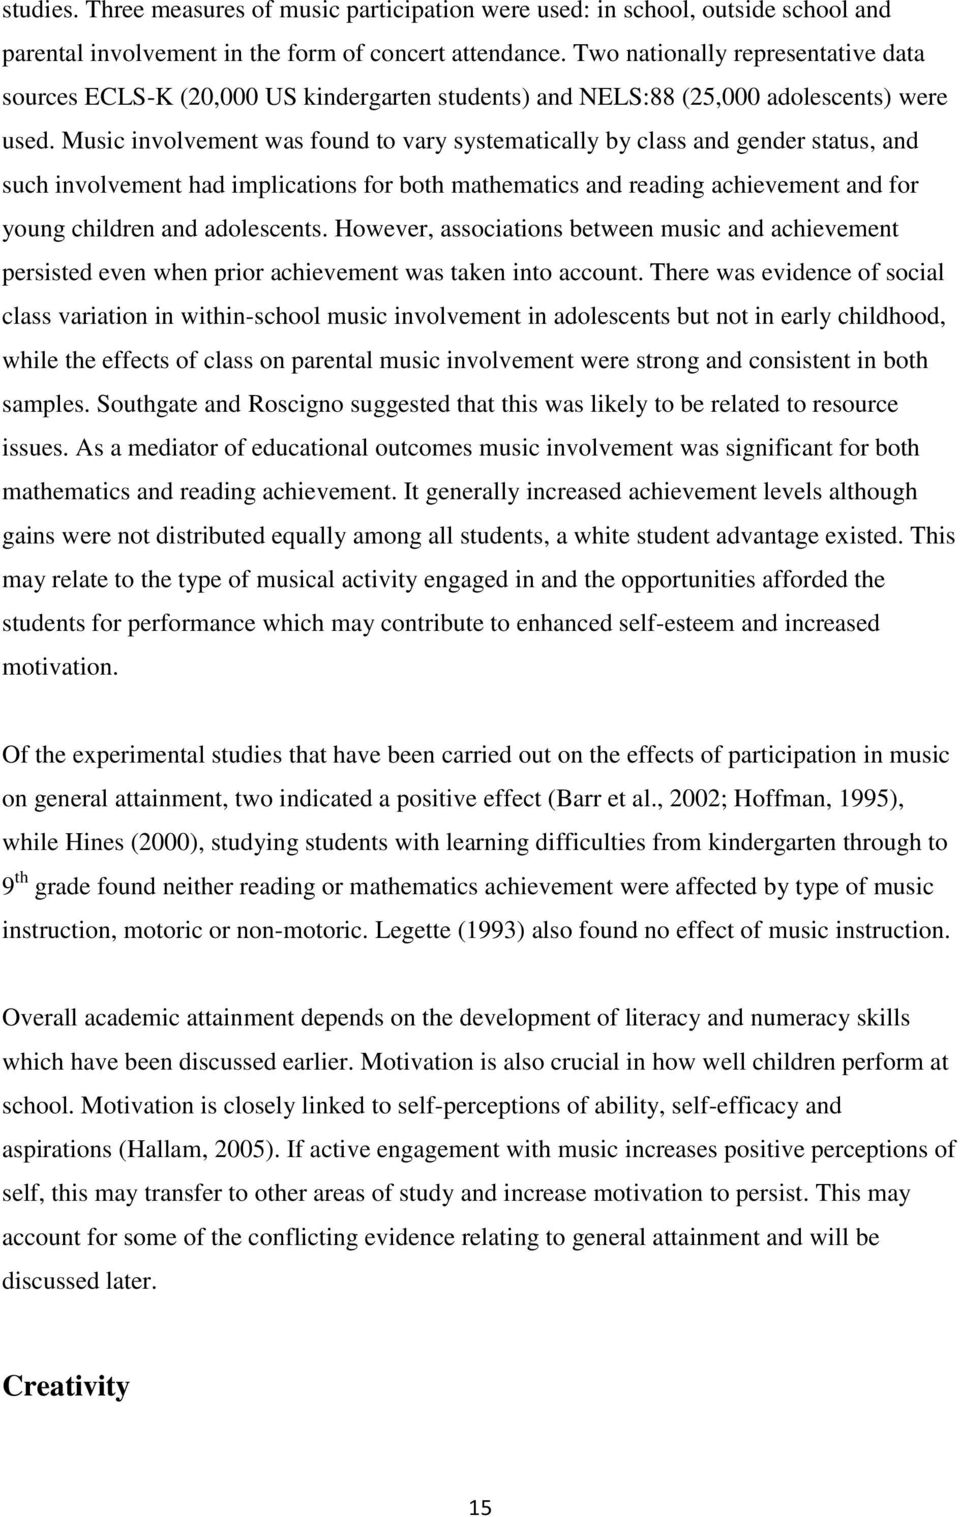 Music involvement was found to vary systematically by class and gender status, and such involvement had implications for both mathematics and reading achievement and for young children and